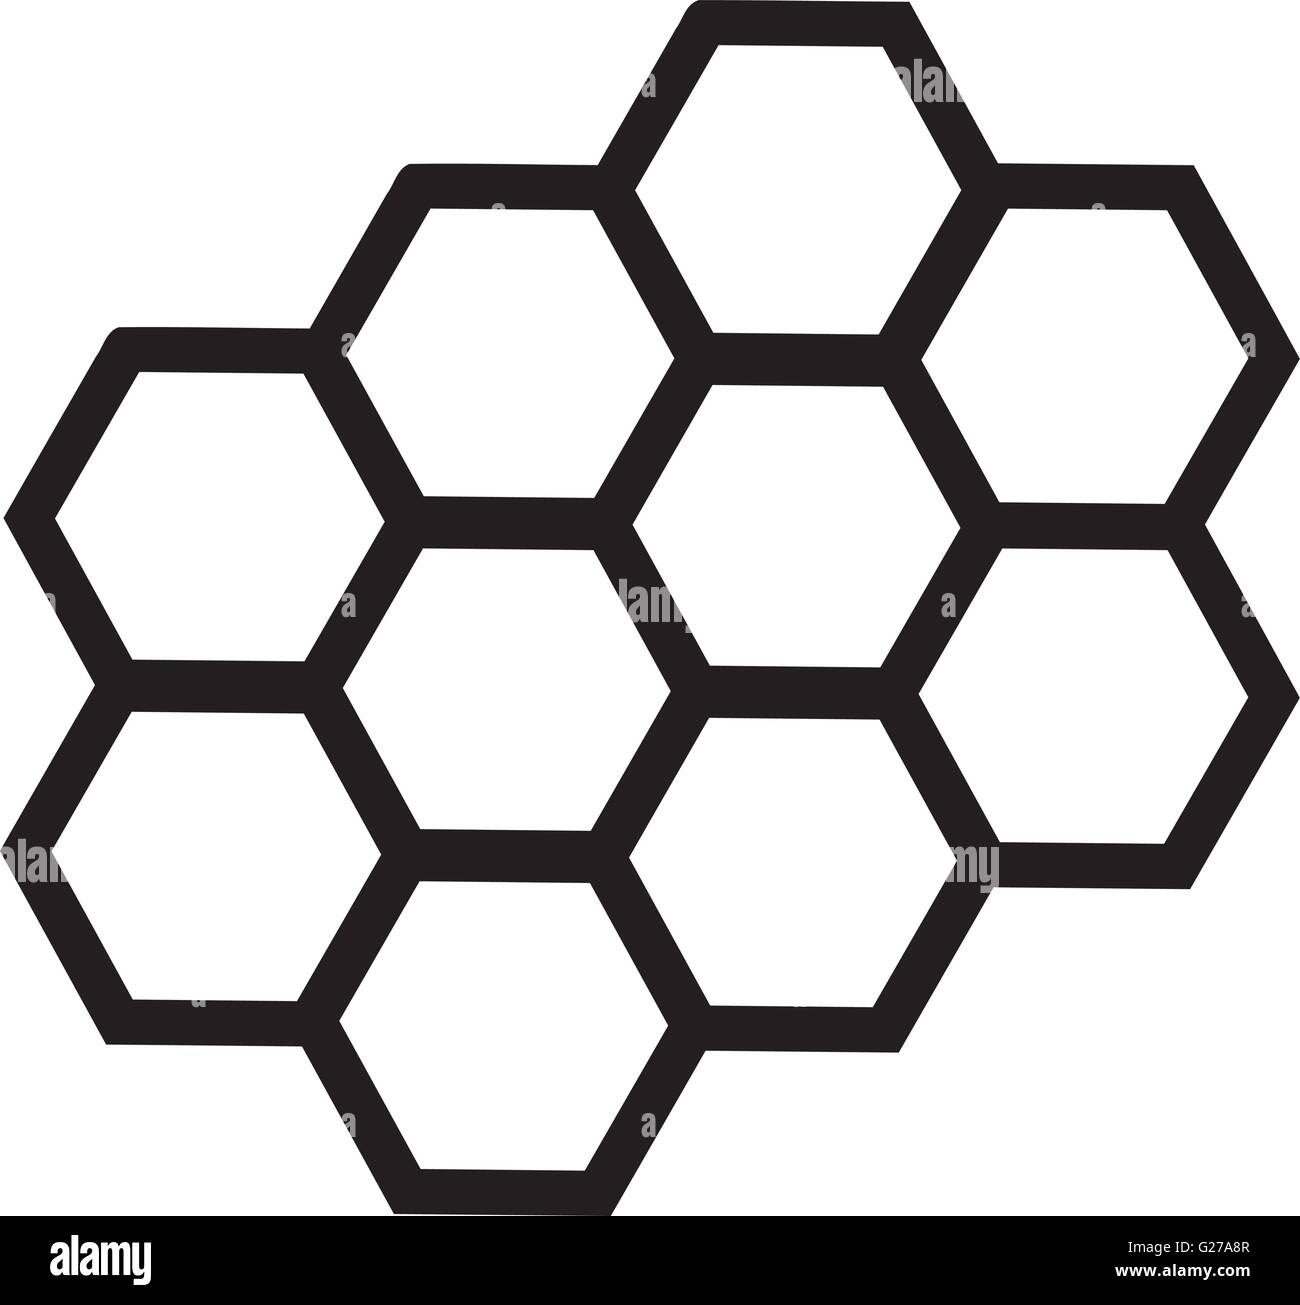 honeycomb outline stock vector art illustration vector image rh alamy com honeycomb vector background honeycomb vector background